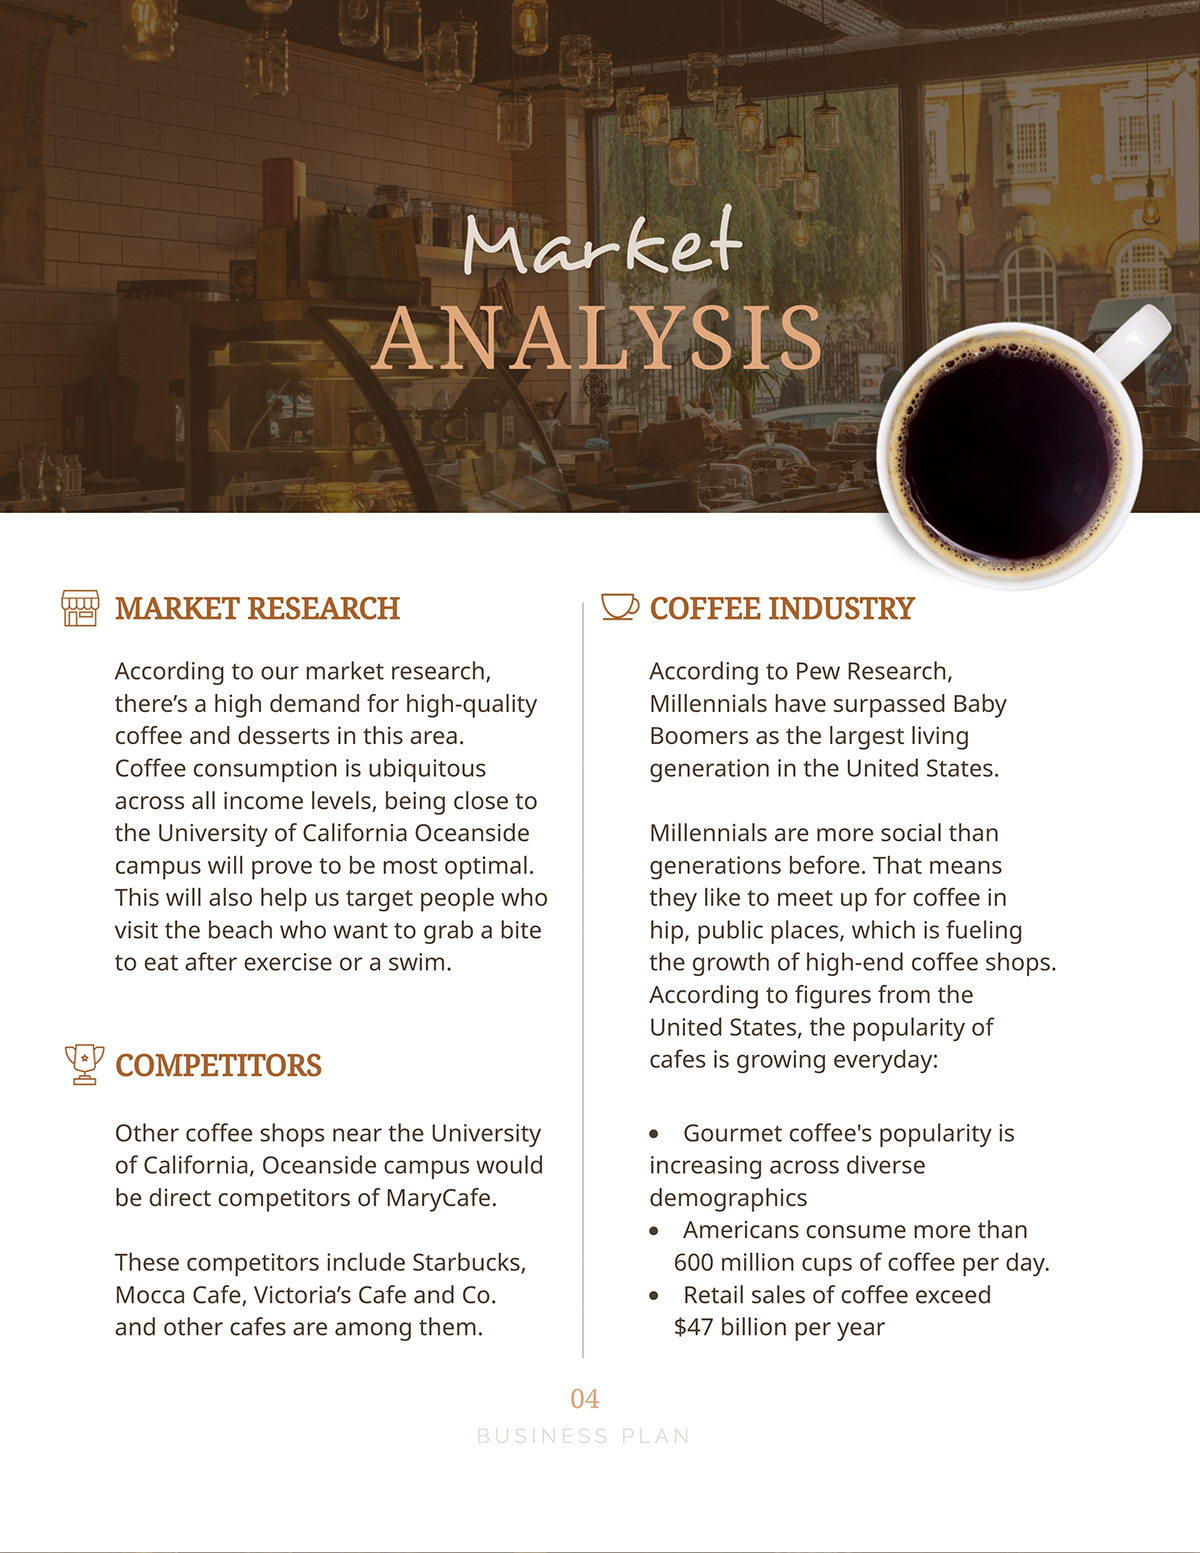 A market analysis page in a business plan template.